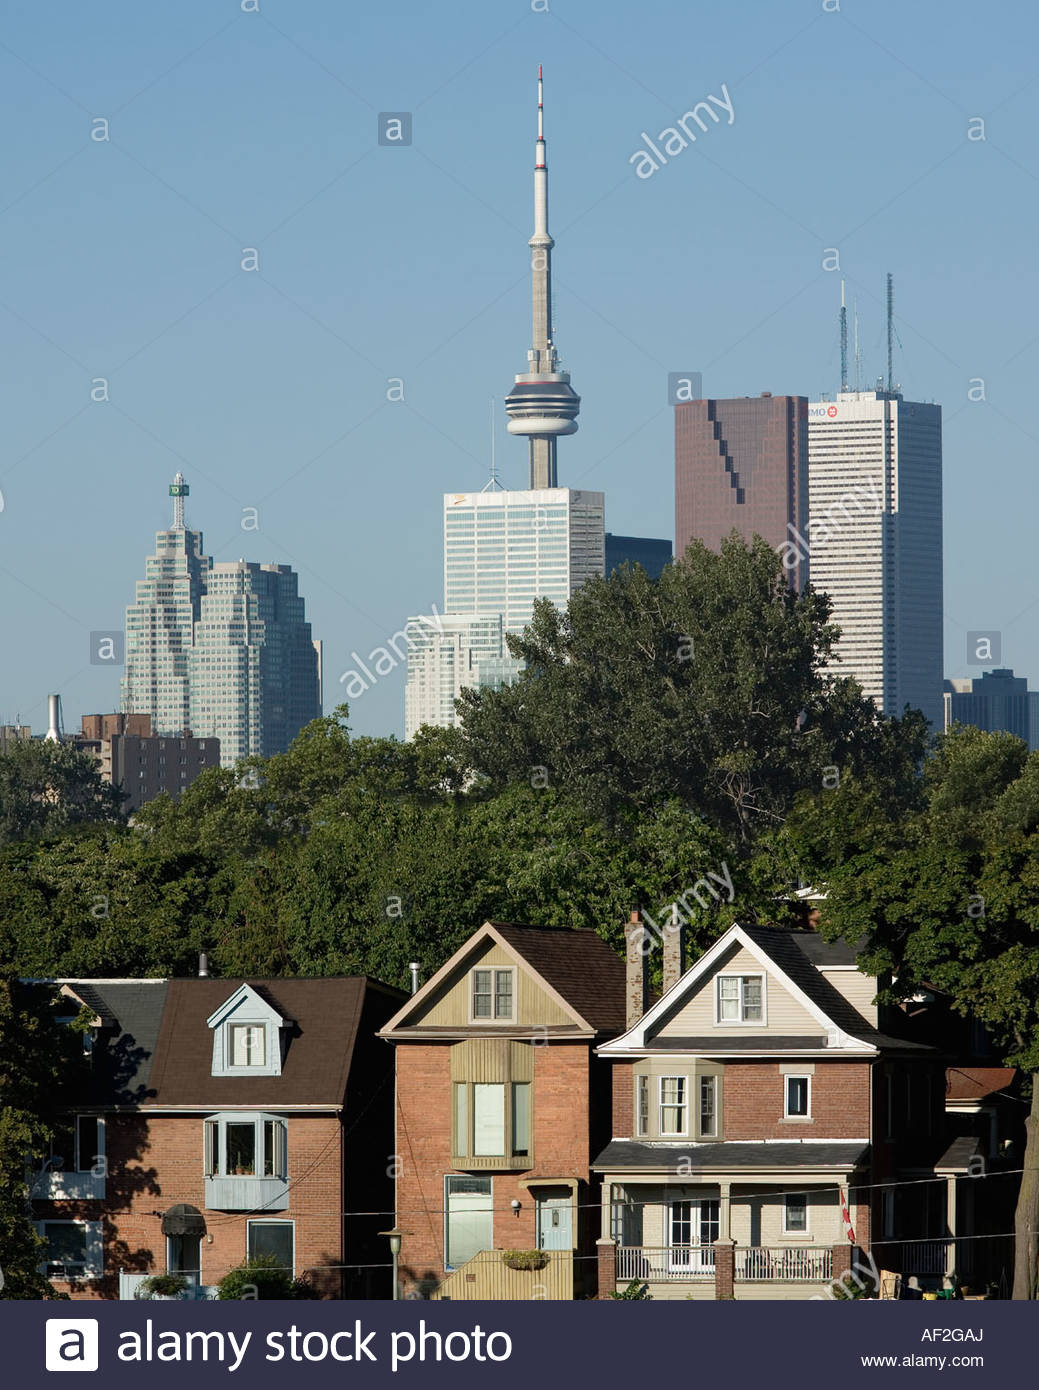 Computer imaging moved these Toronto houses by 100 metres to bring them in line with the skyline of Toronto Ontario - Stock Image